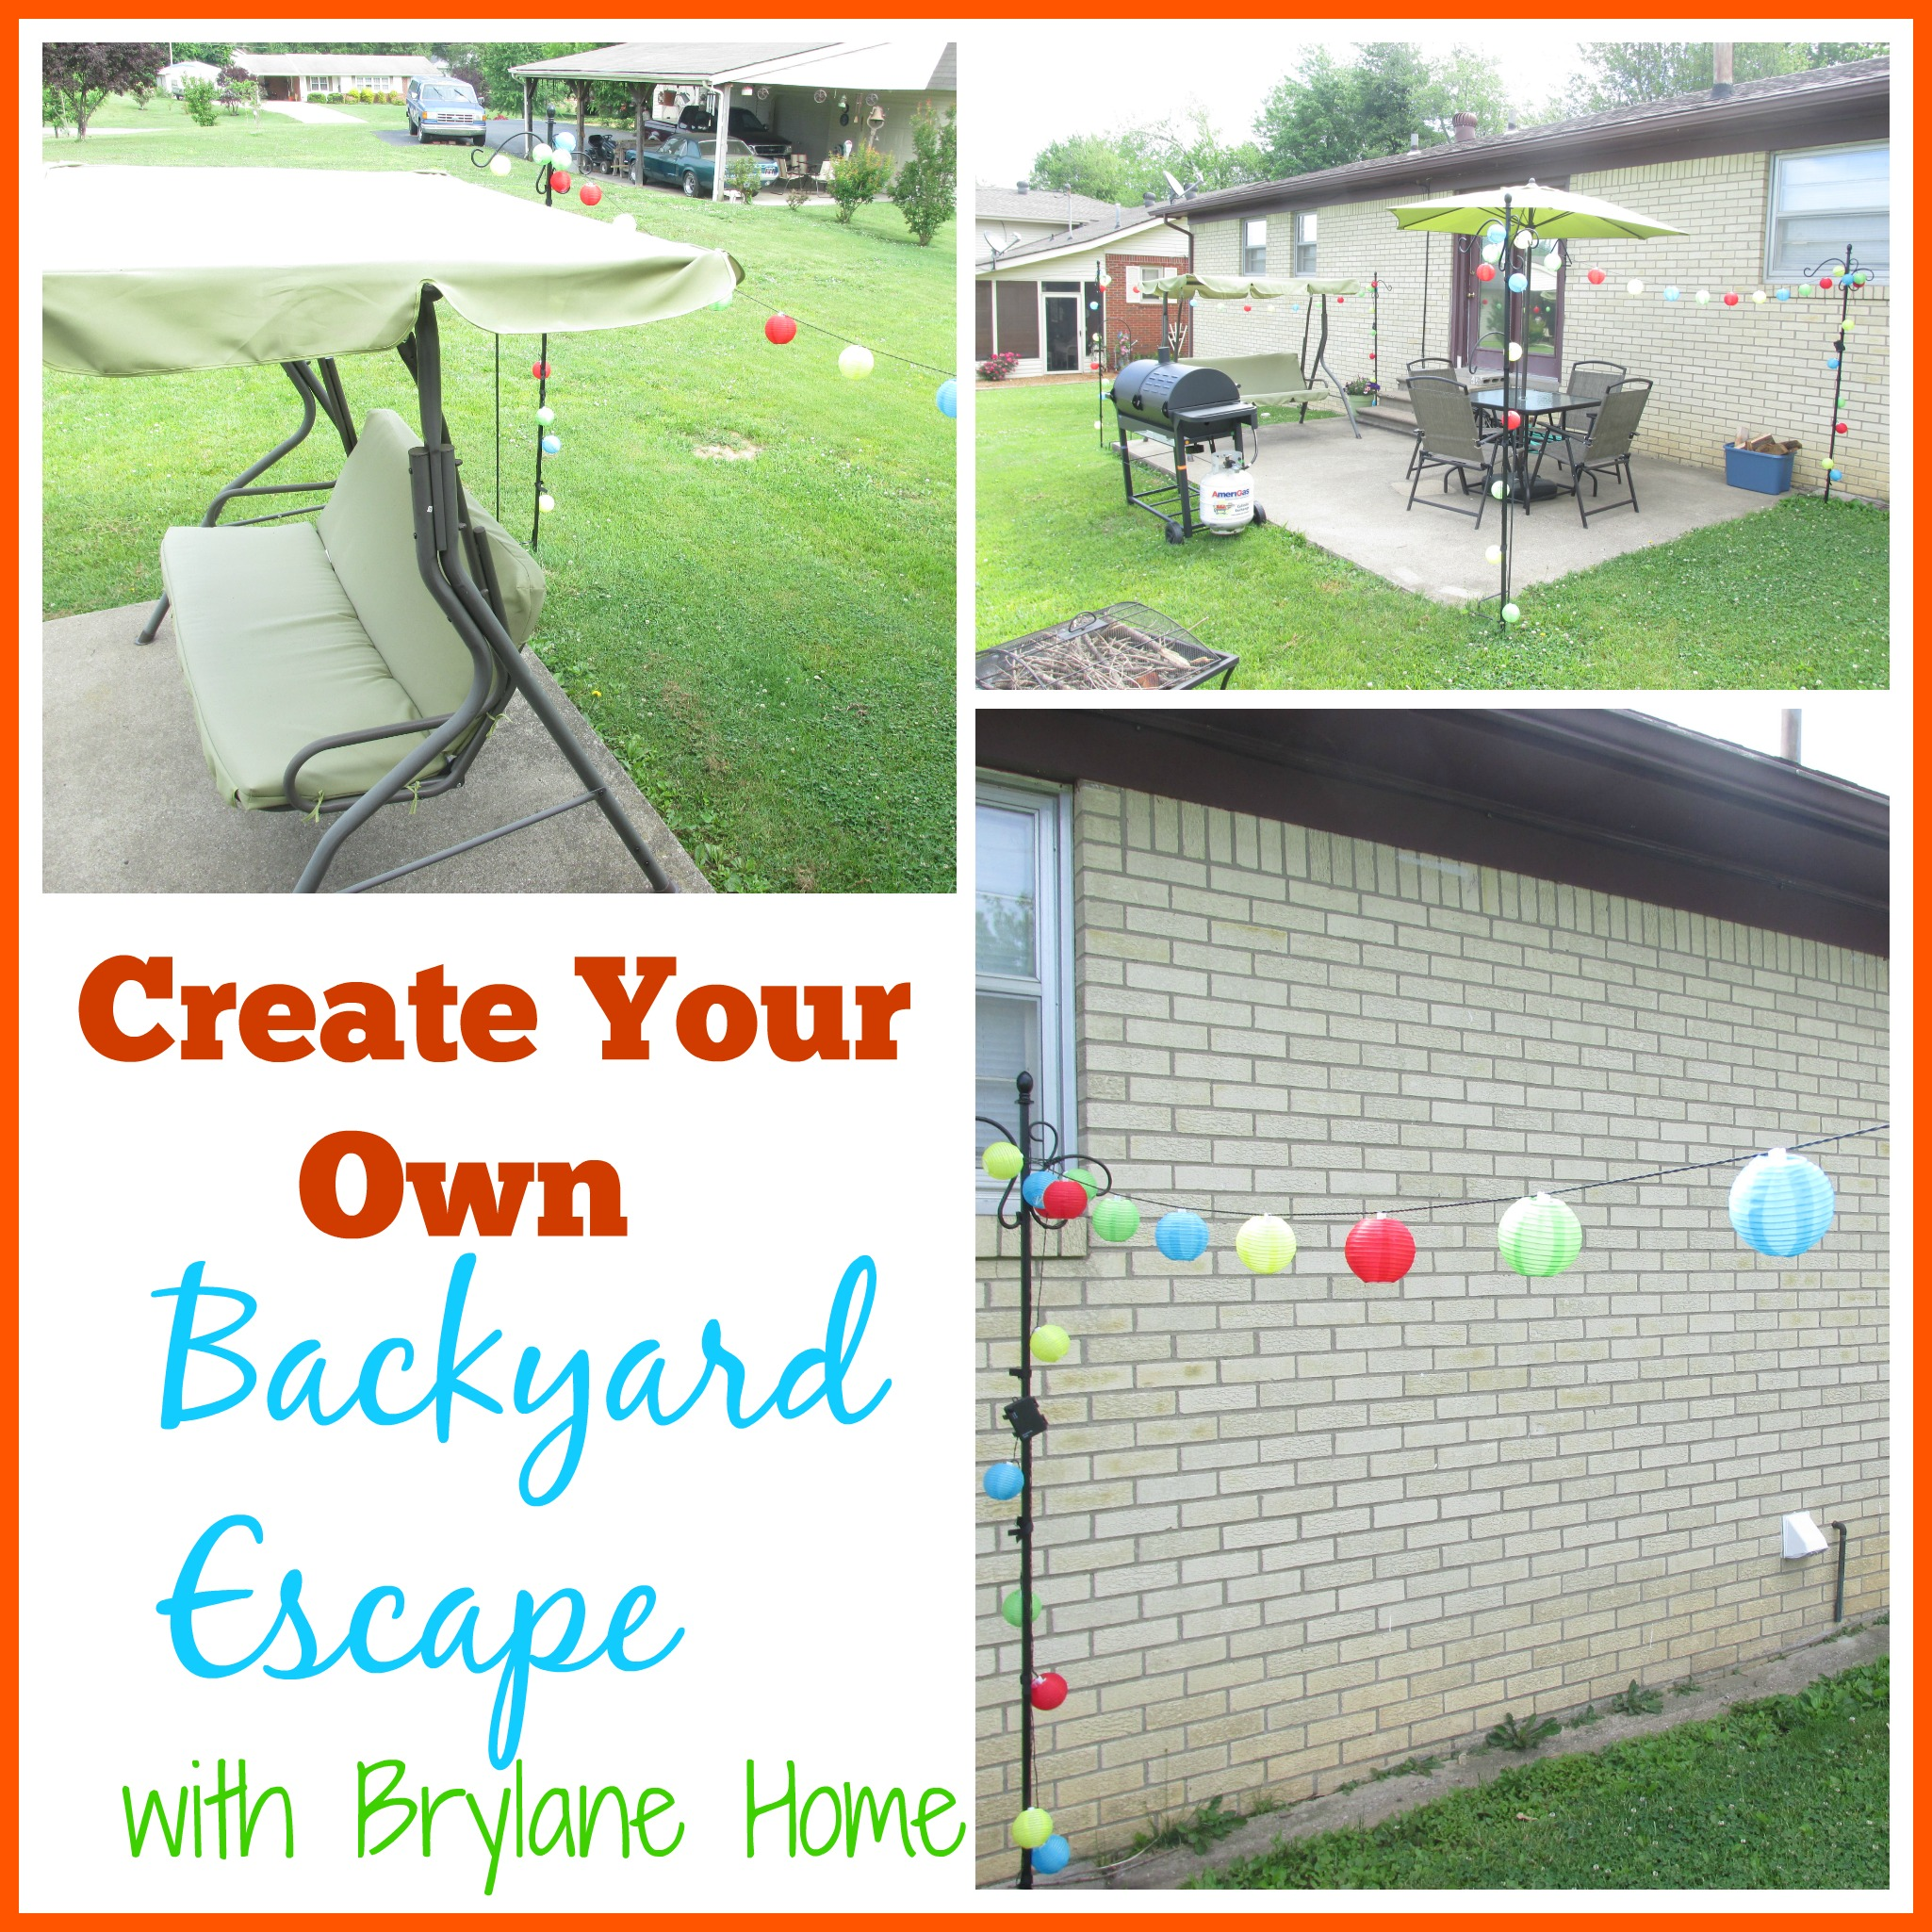 Create a Backyard Escape with Brylane Home